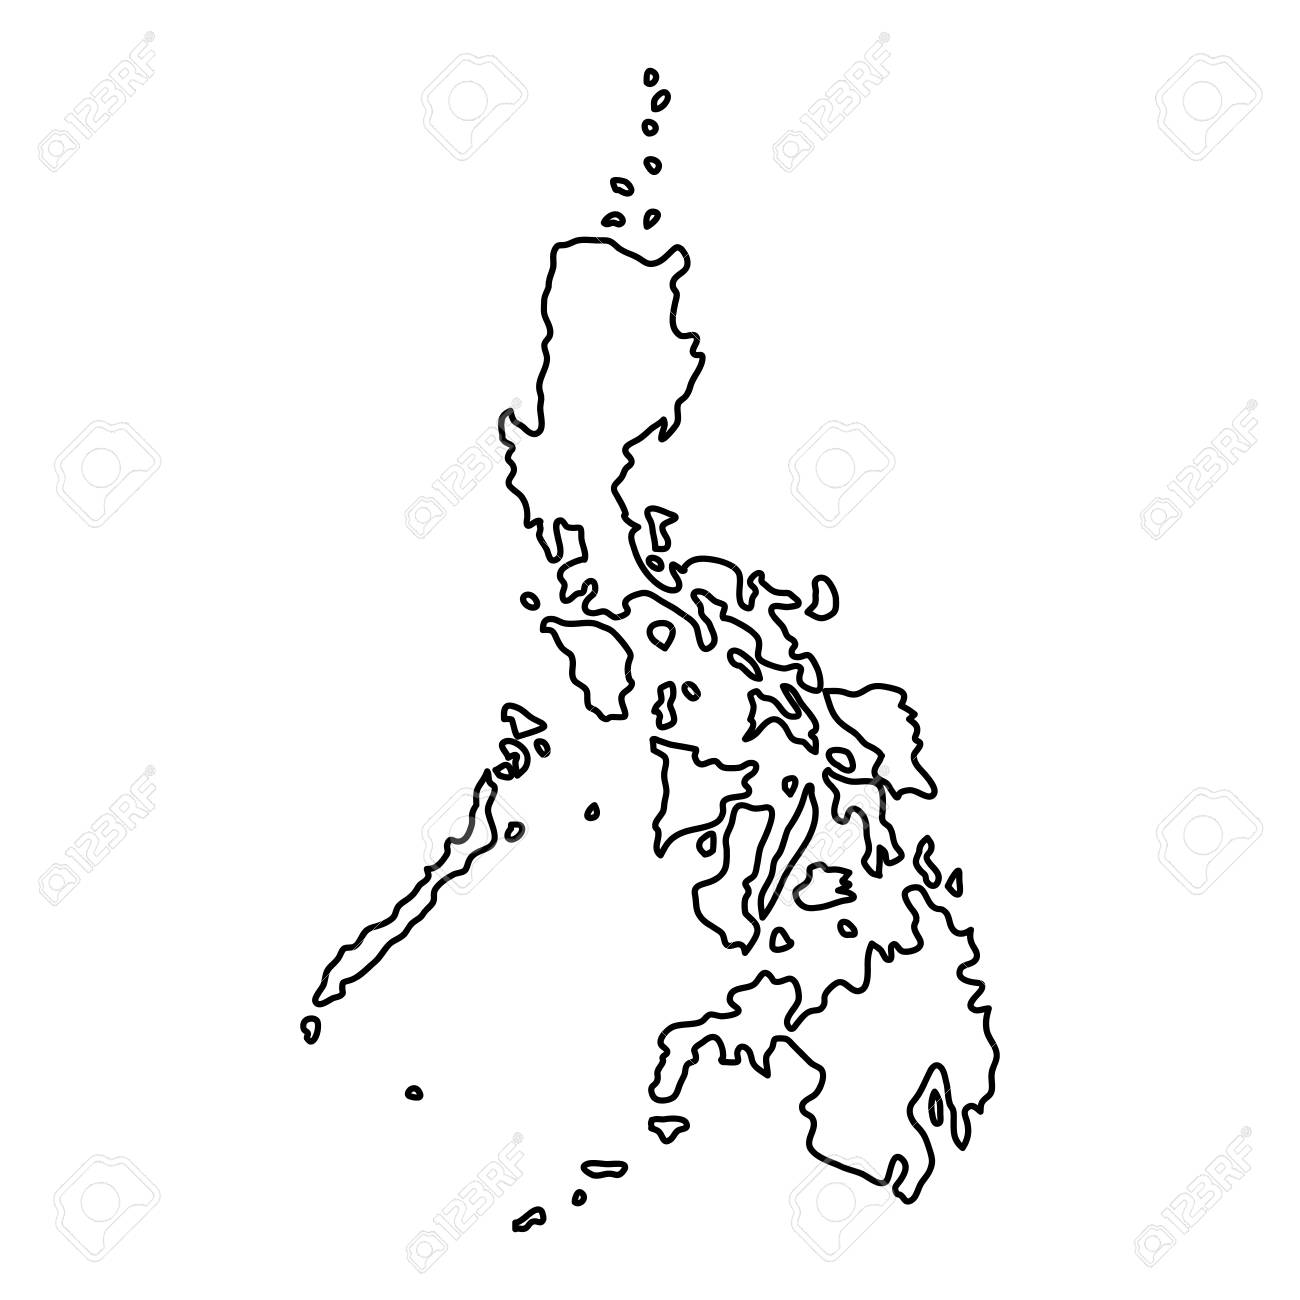 philippines map of black contour curves on white background of